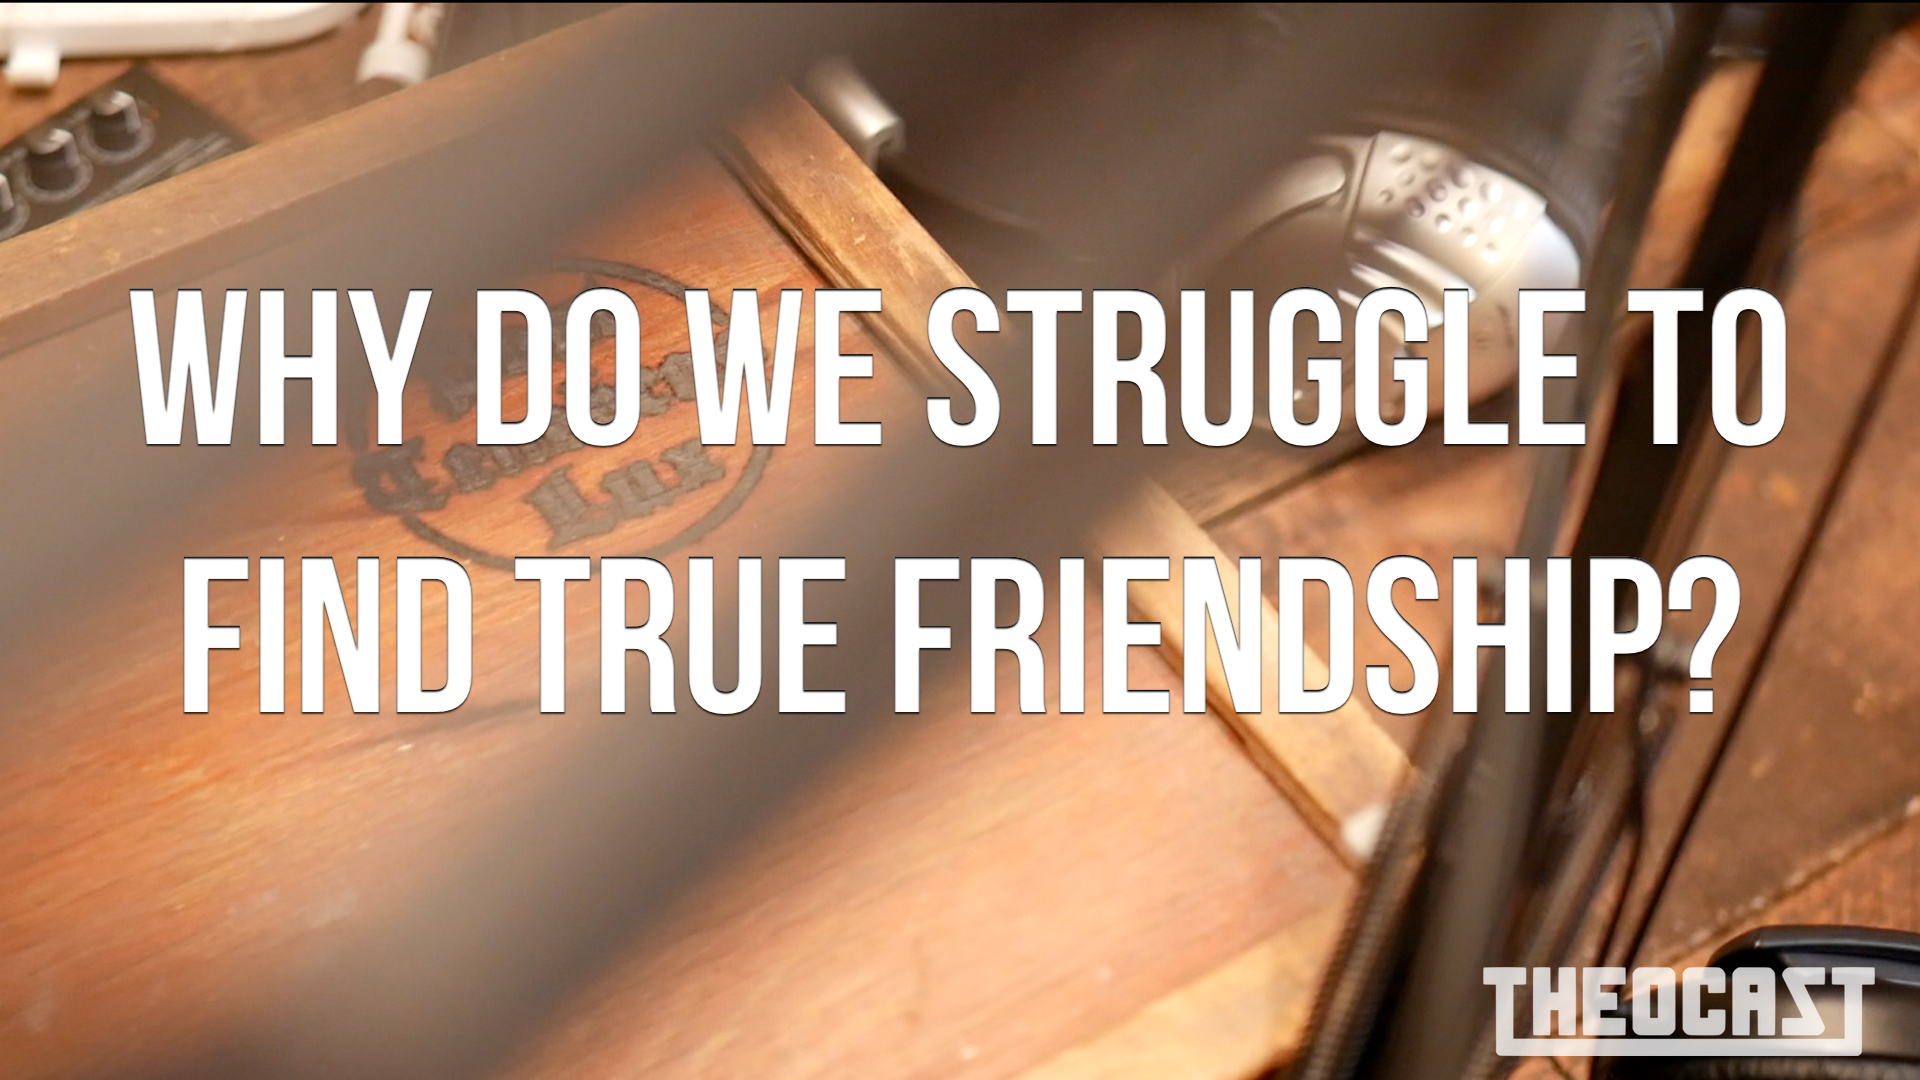 Why do we struggle to find true friendship?